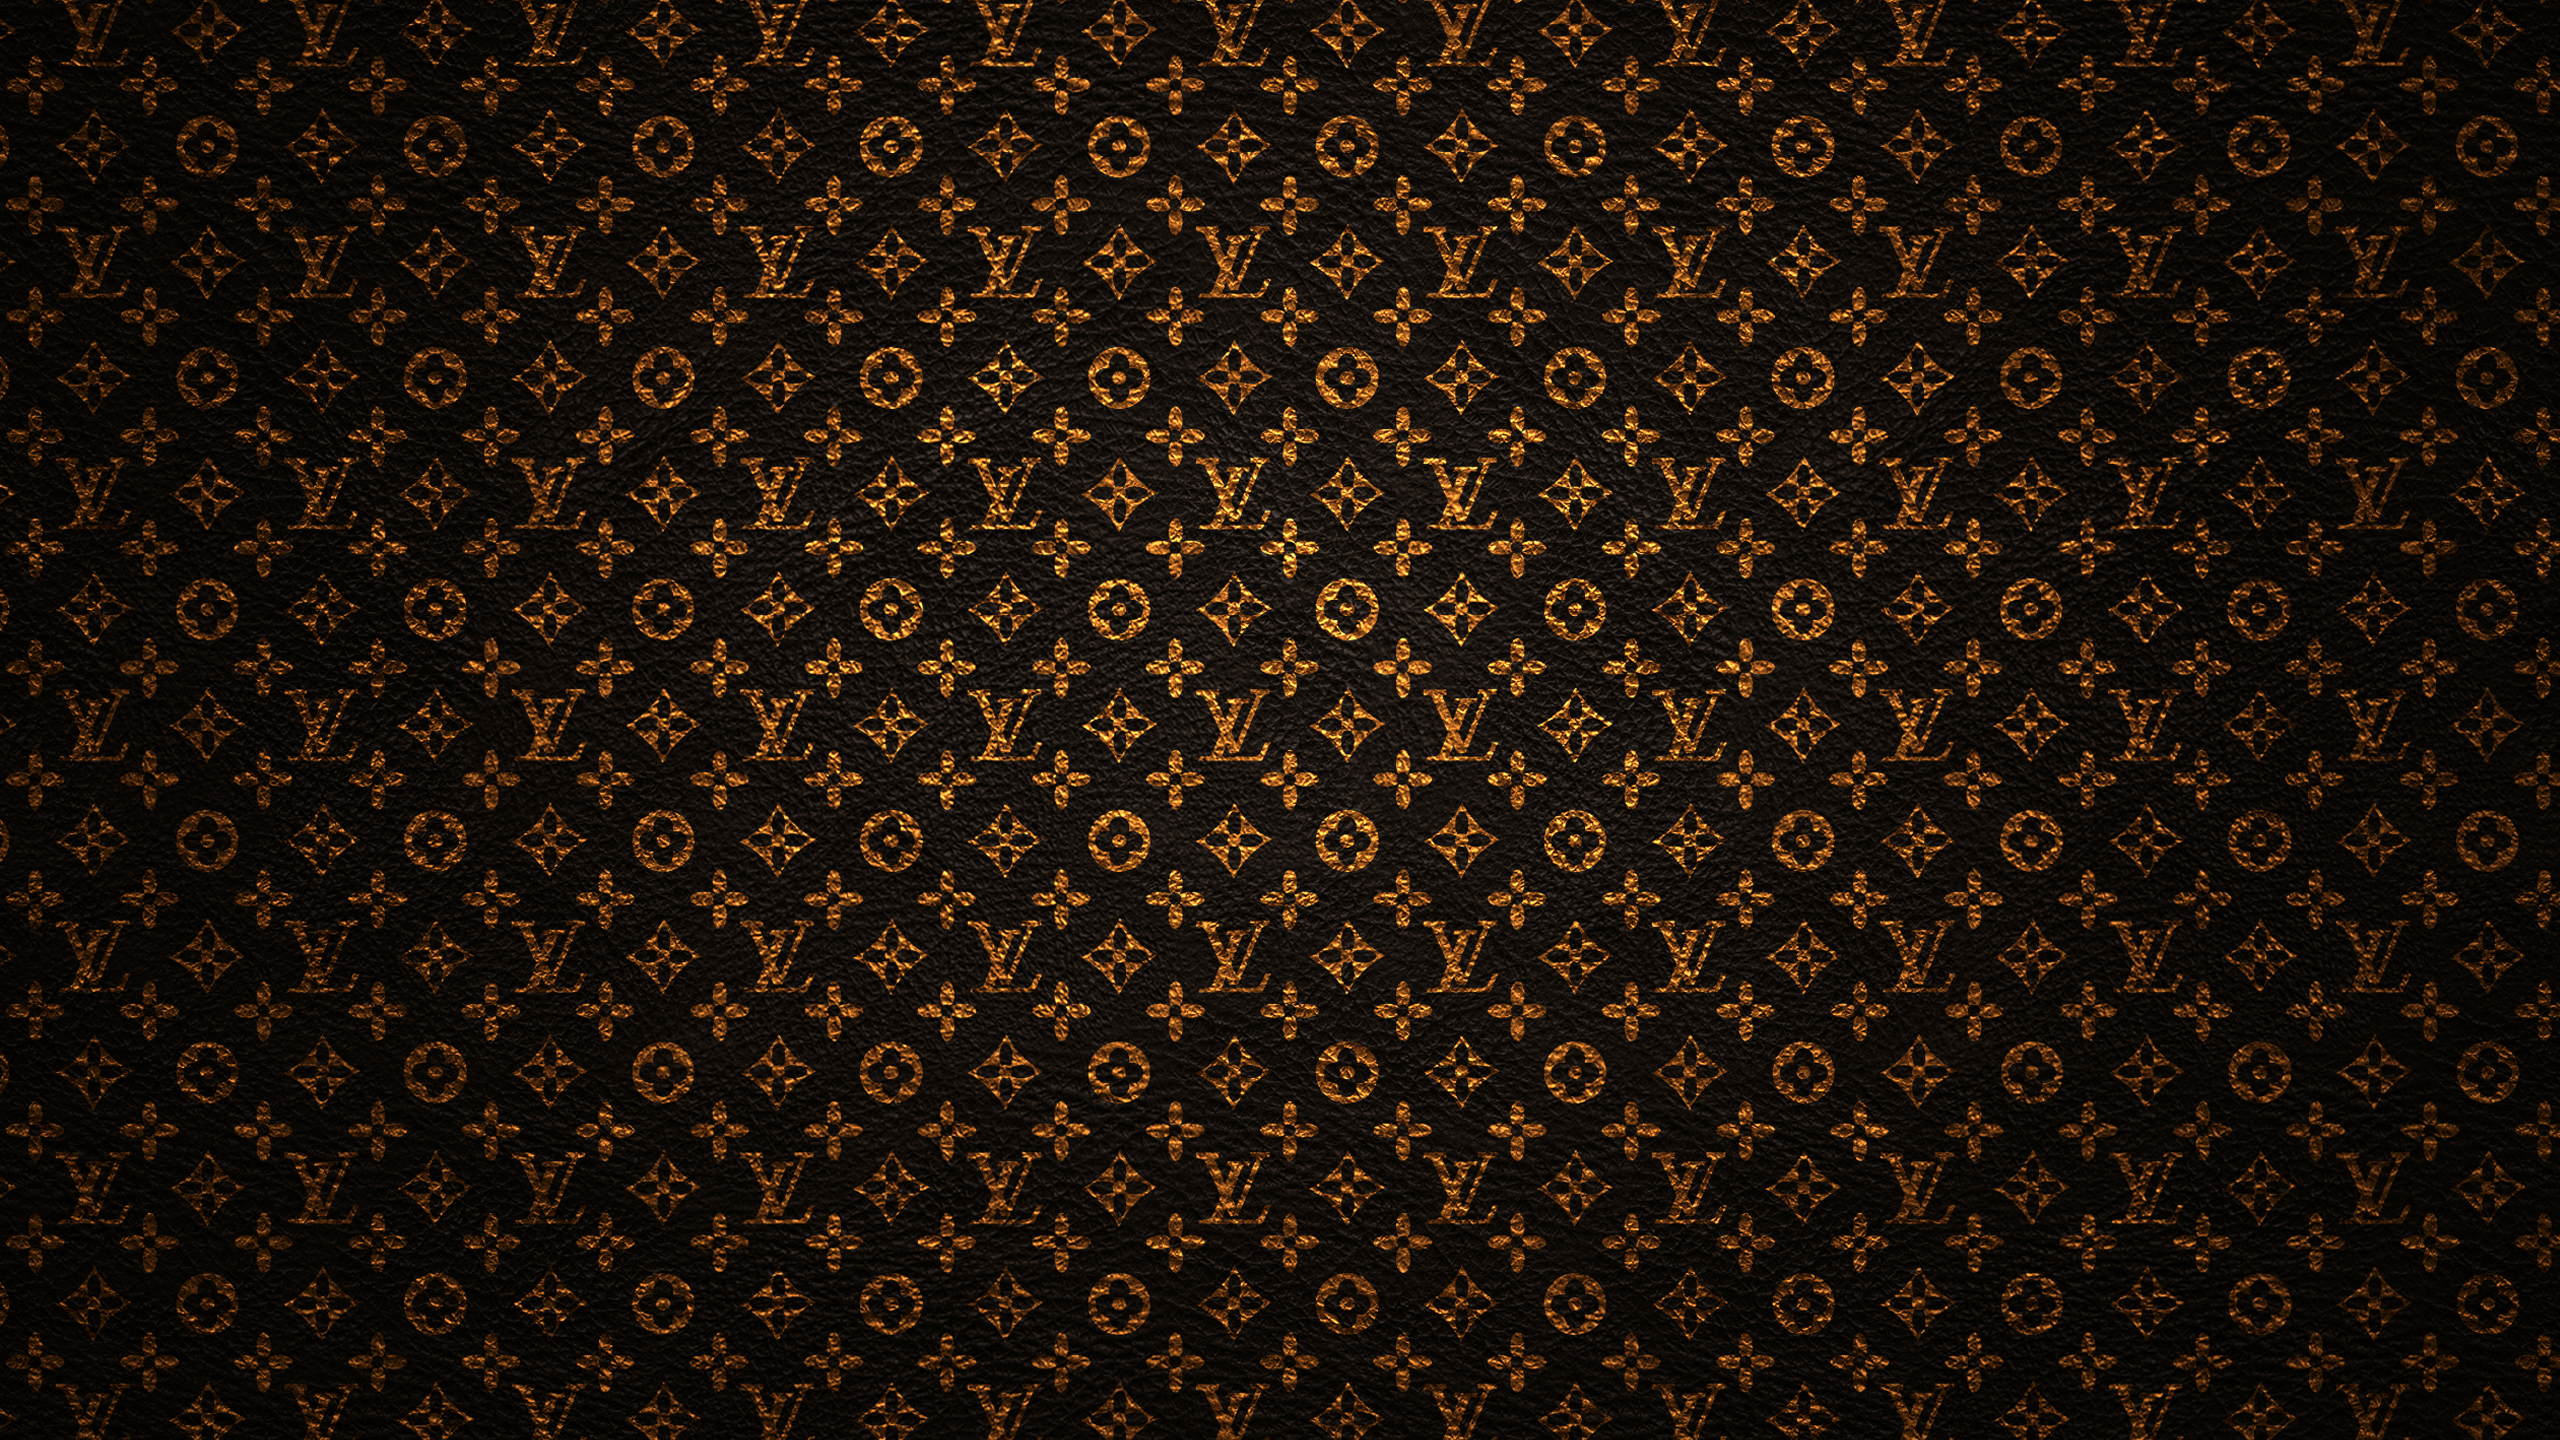 Louis Vuitton Hd Wallpaper 2560x1440 32834